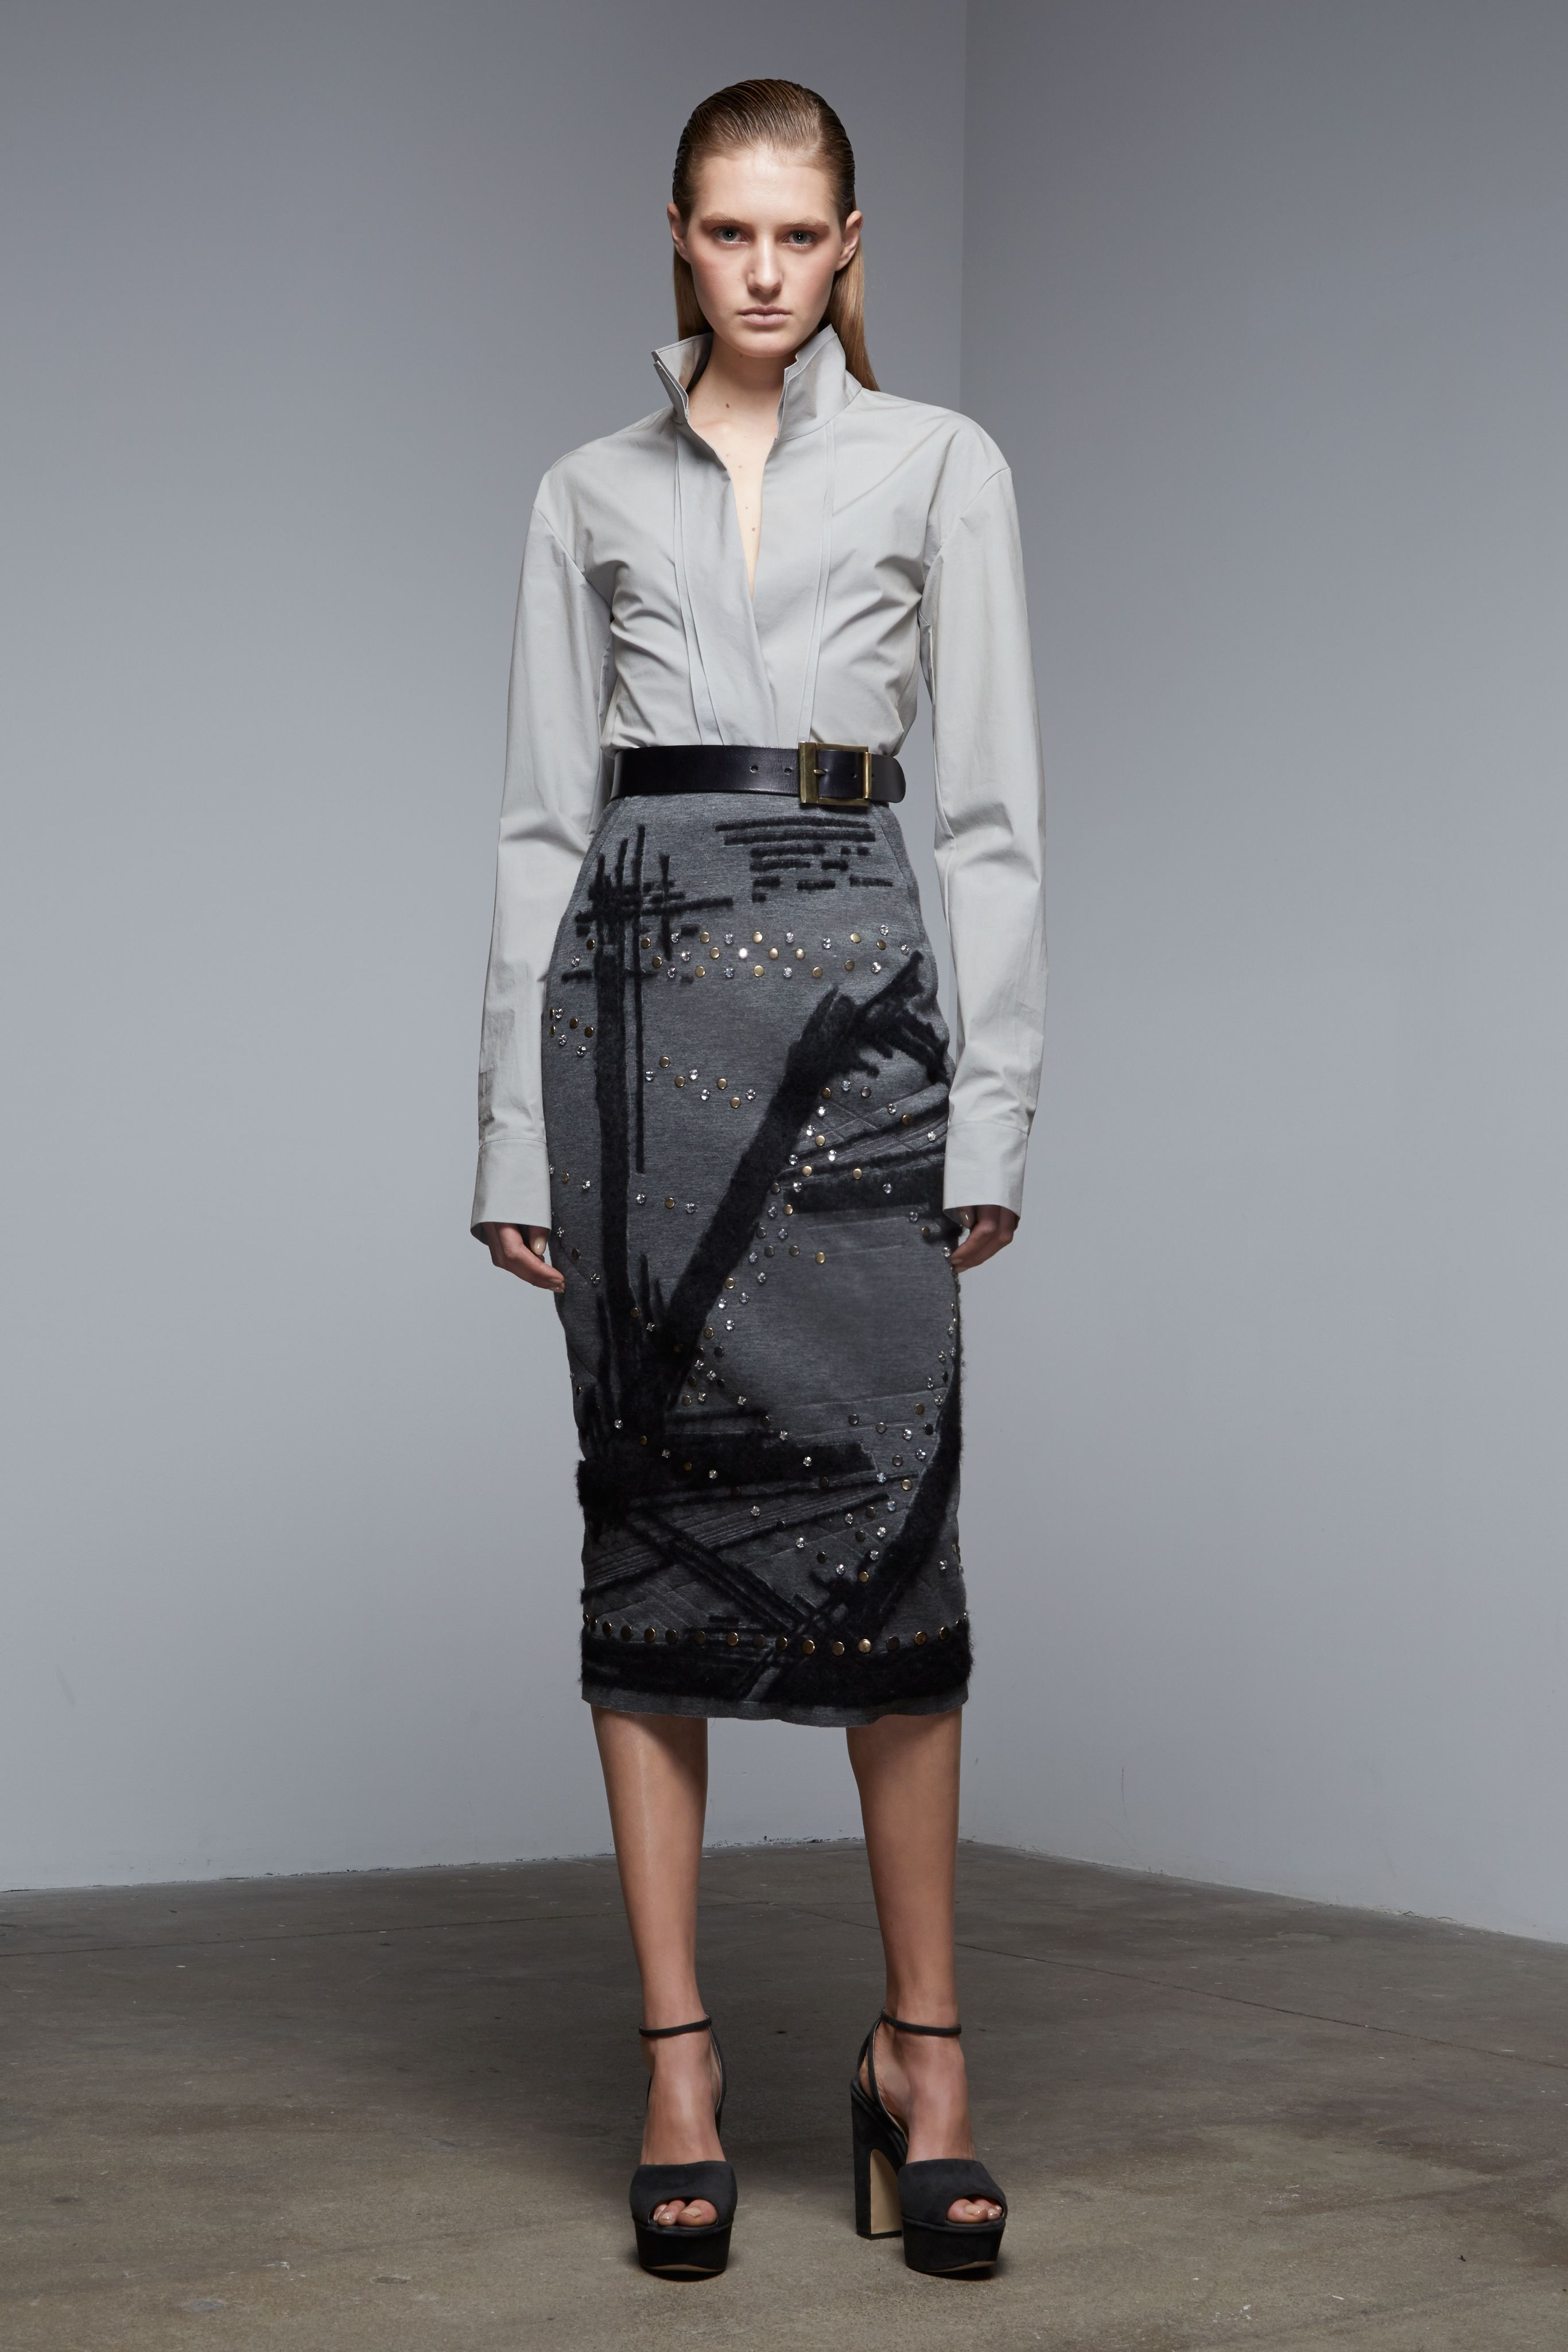 4545445fa25 130 Standout Looks From Prefall 2015 - ELLE.com